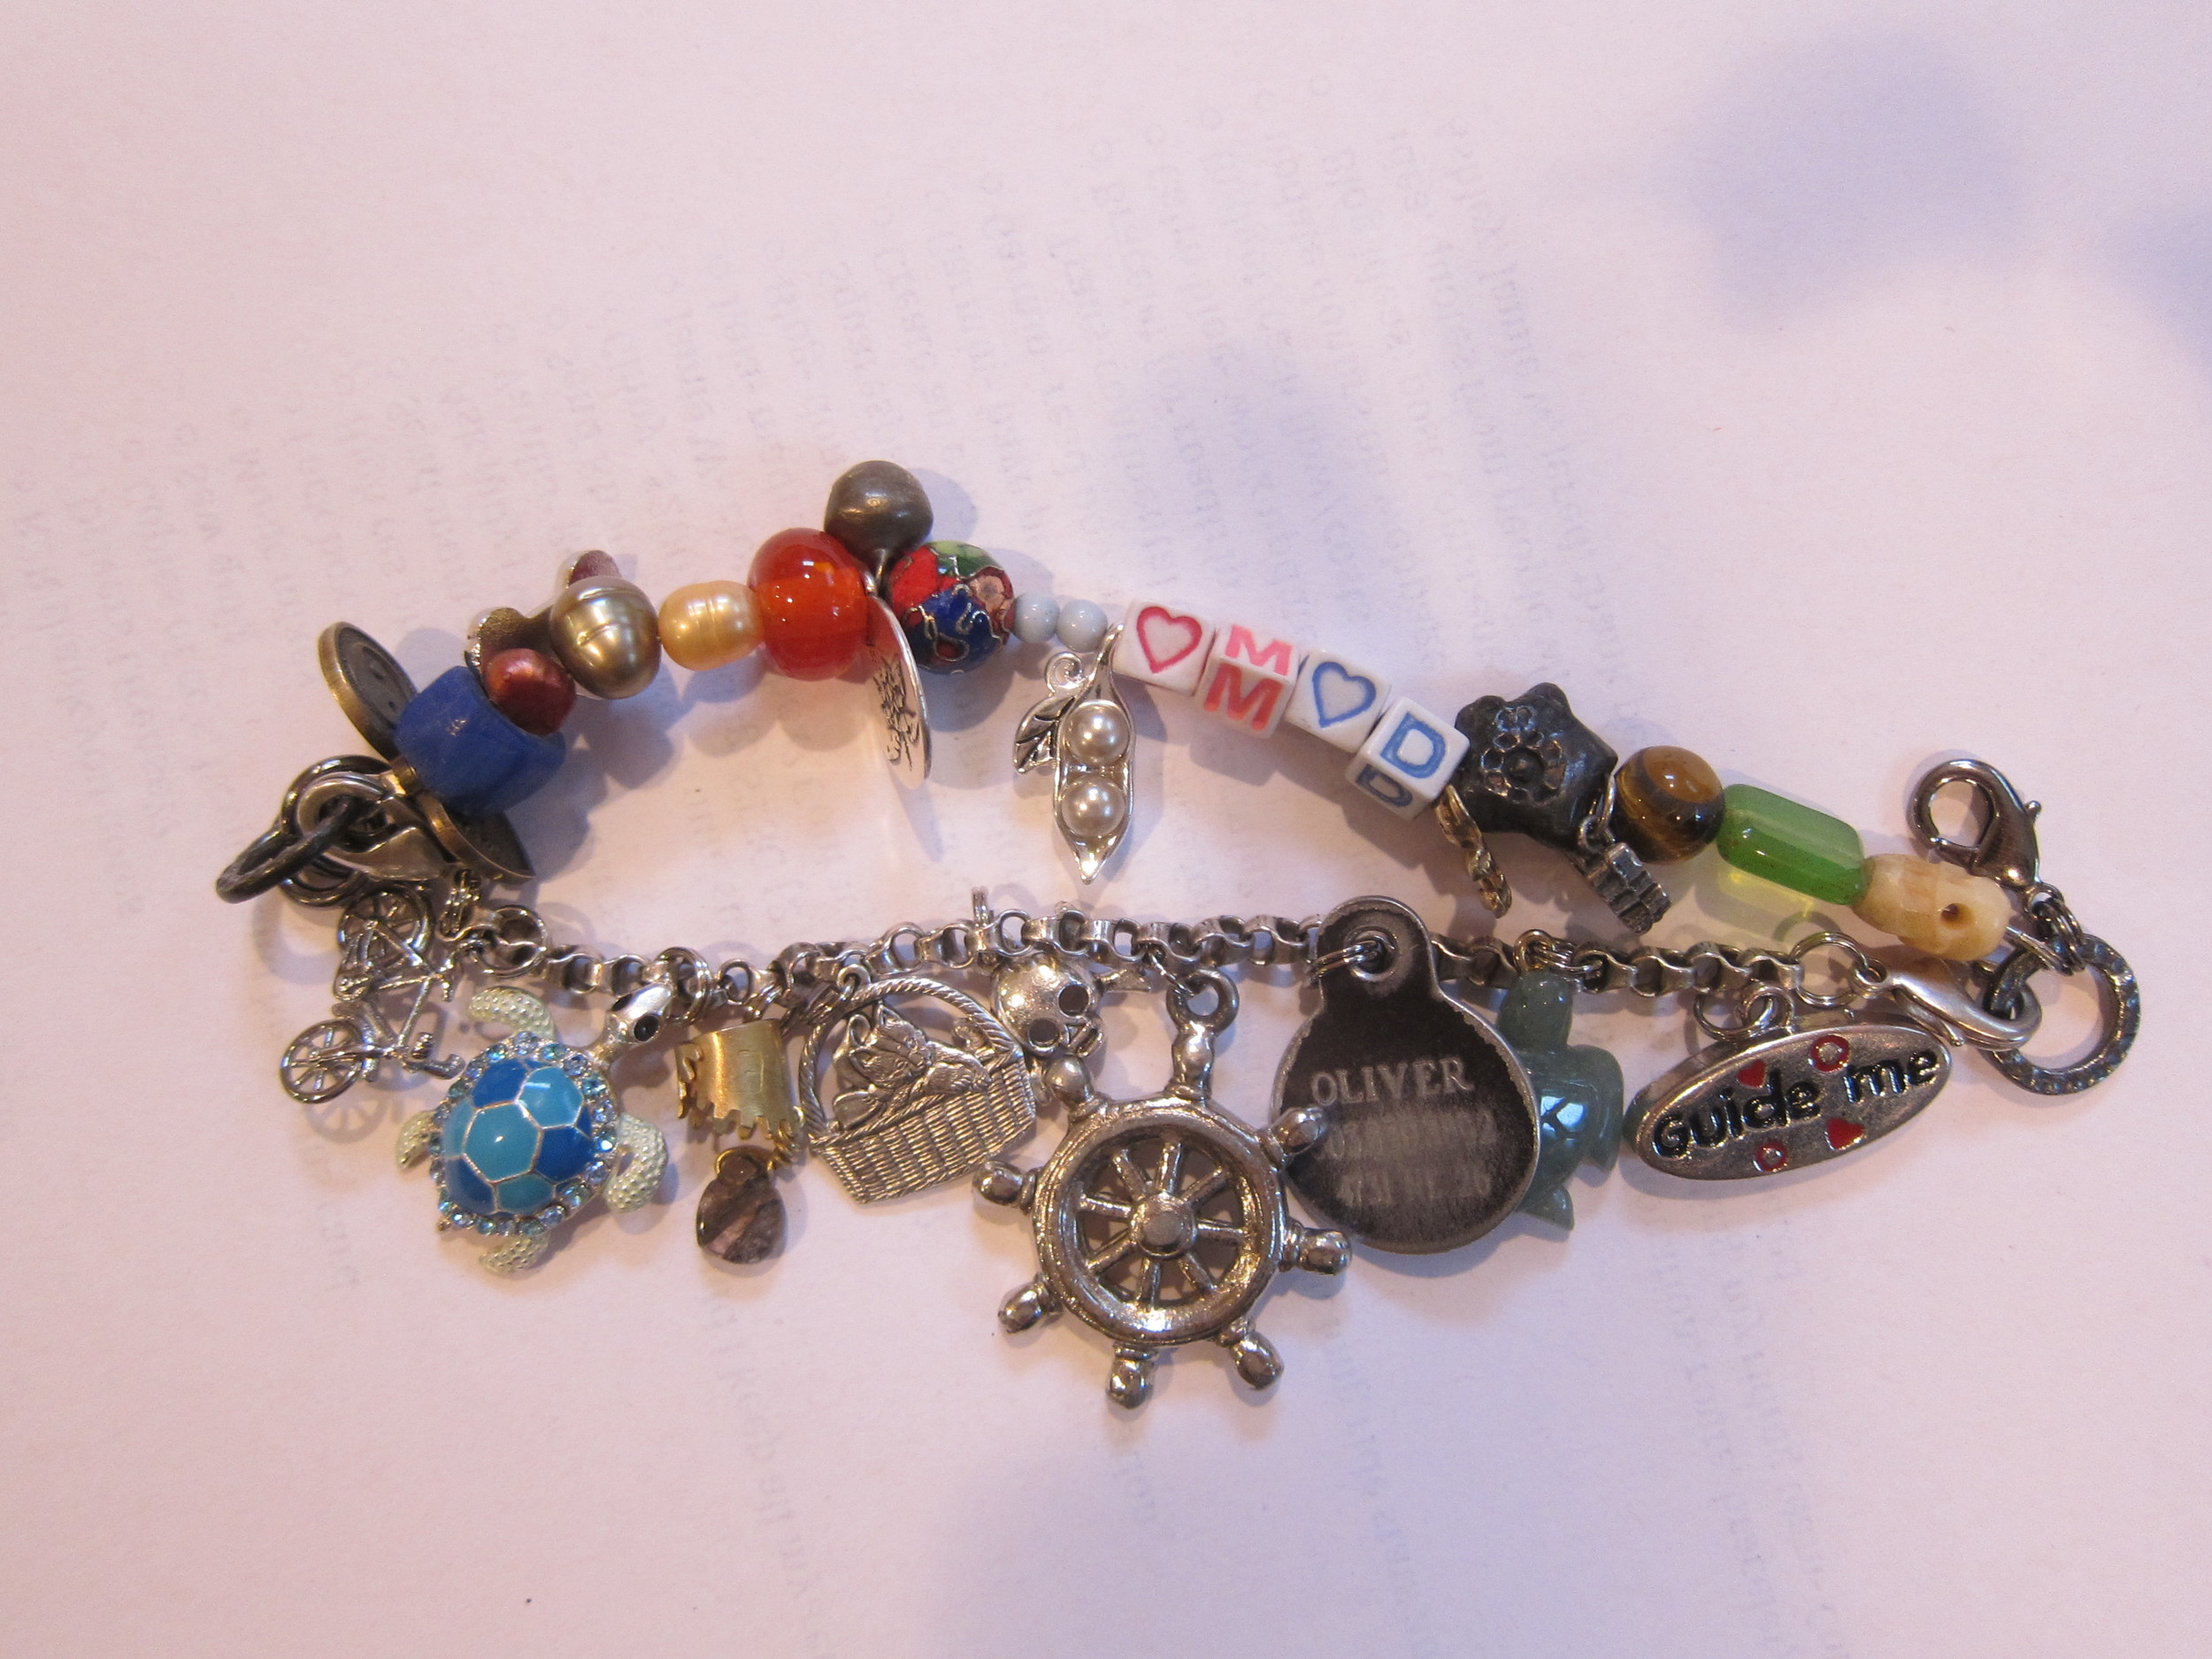 Bracelet made from charms and beads from 21 close friends and family members! Including 2 I purchased for myself.